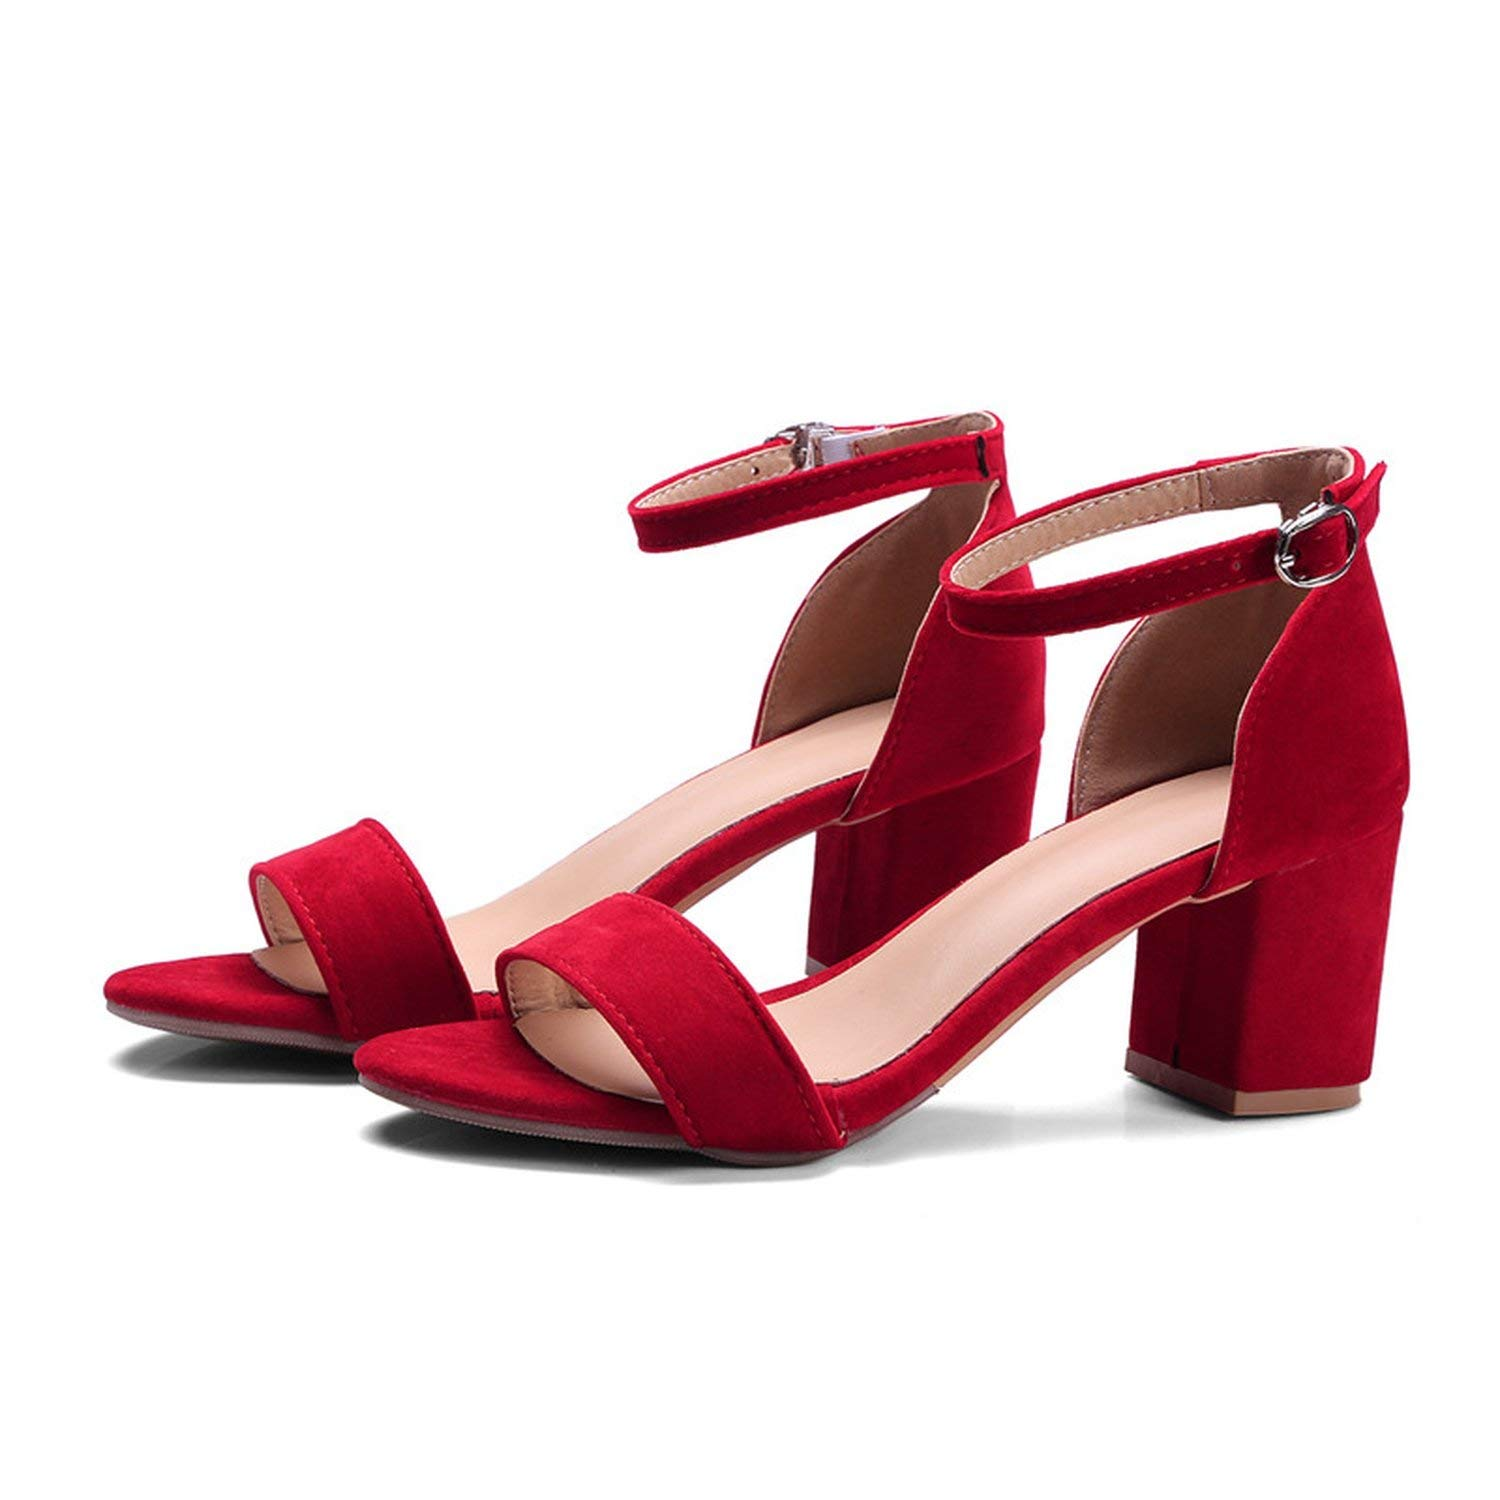 New-Loft Flock high Square Heels Shoes Solid Buckle Women Shoes Sandals Fashion Sexy Large Size 34-45